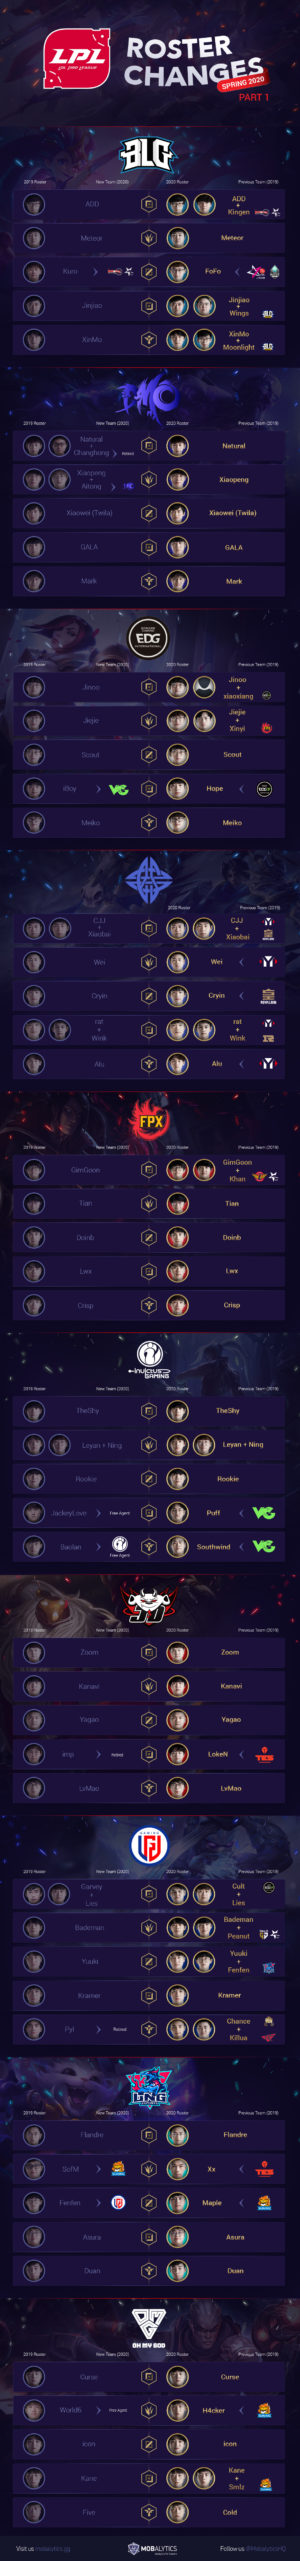 LPL Roster Changes Infographic (Spring 2020 Teams, Part I)